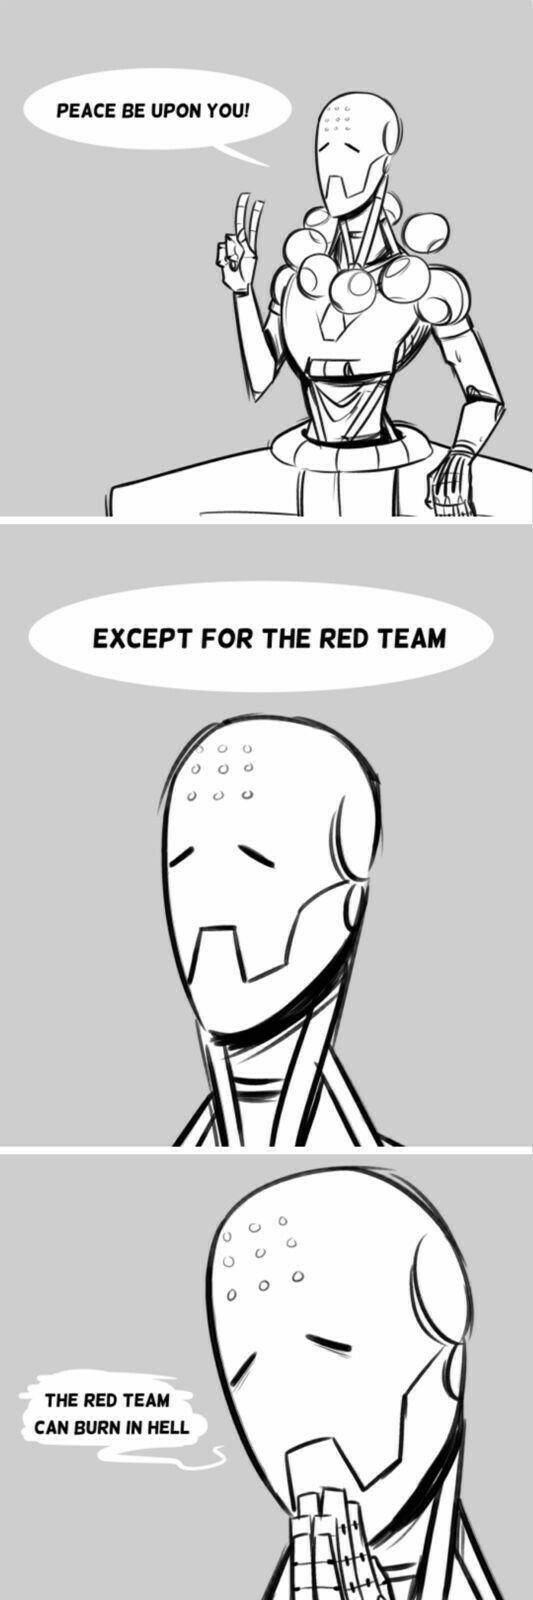 Overwatch: Memes - All The Memes image 40